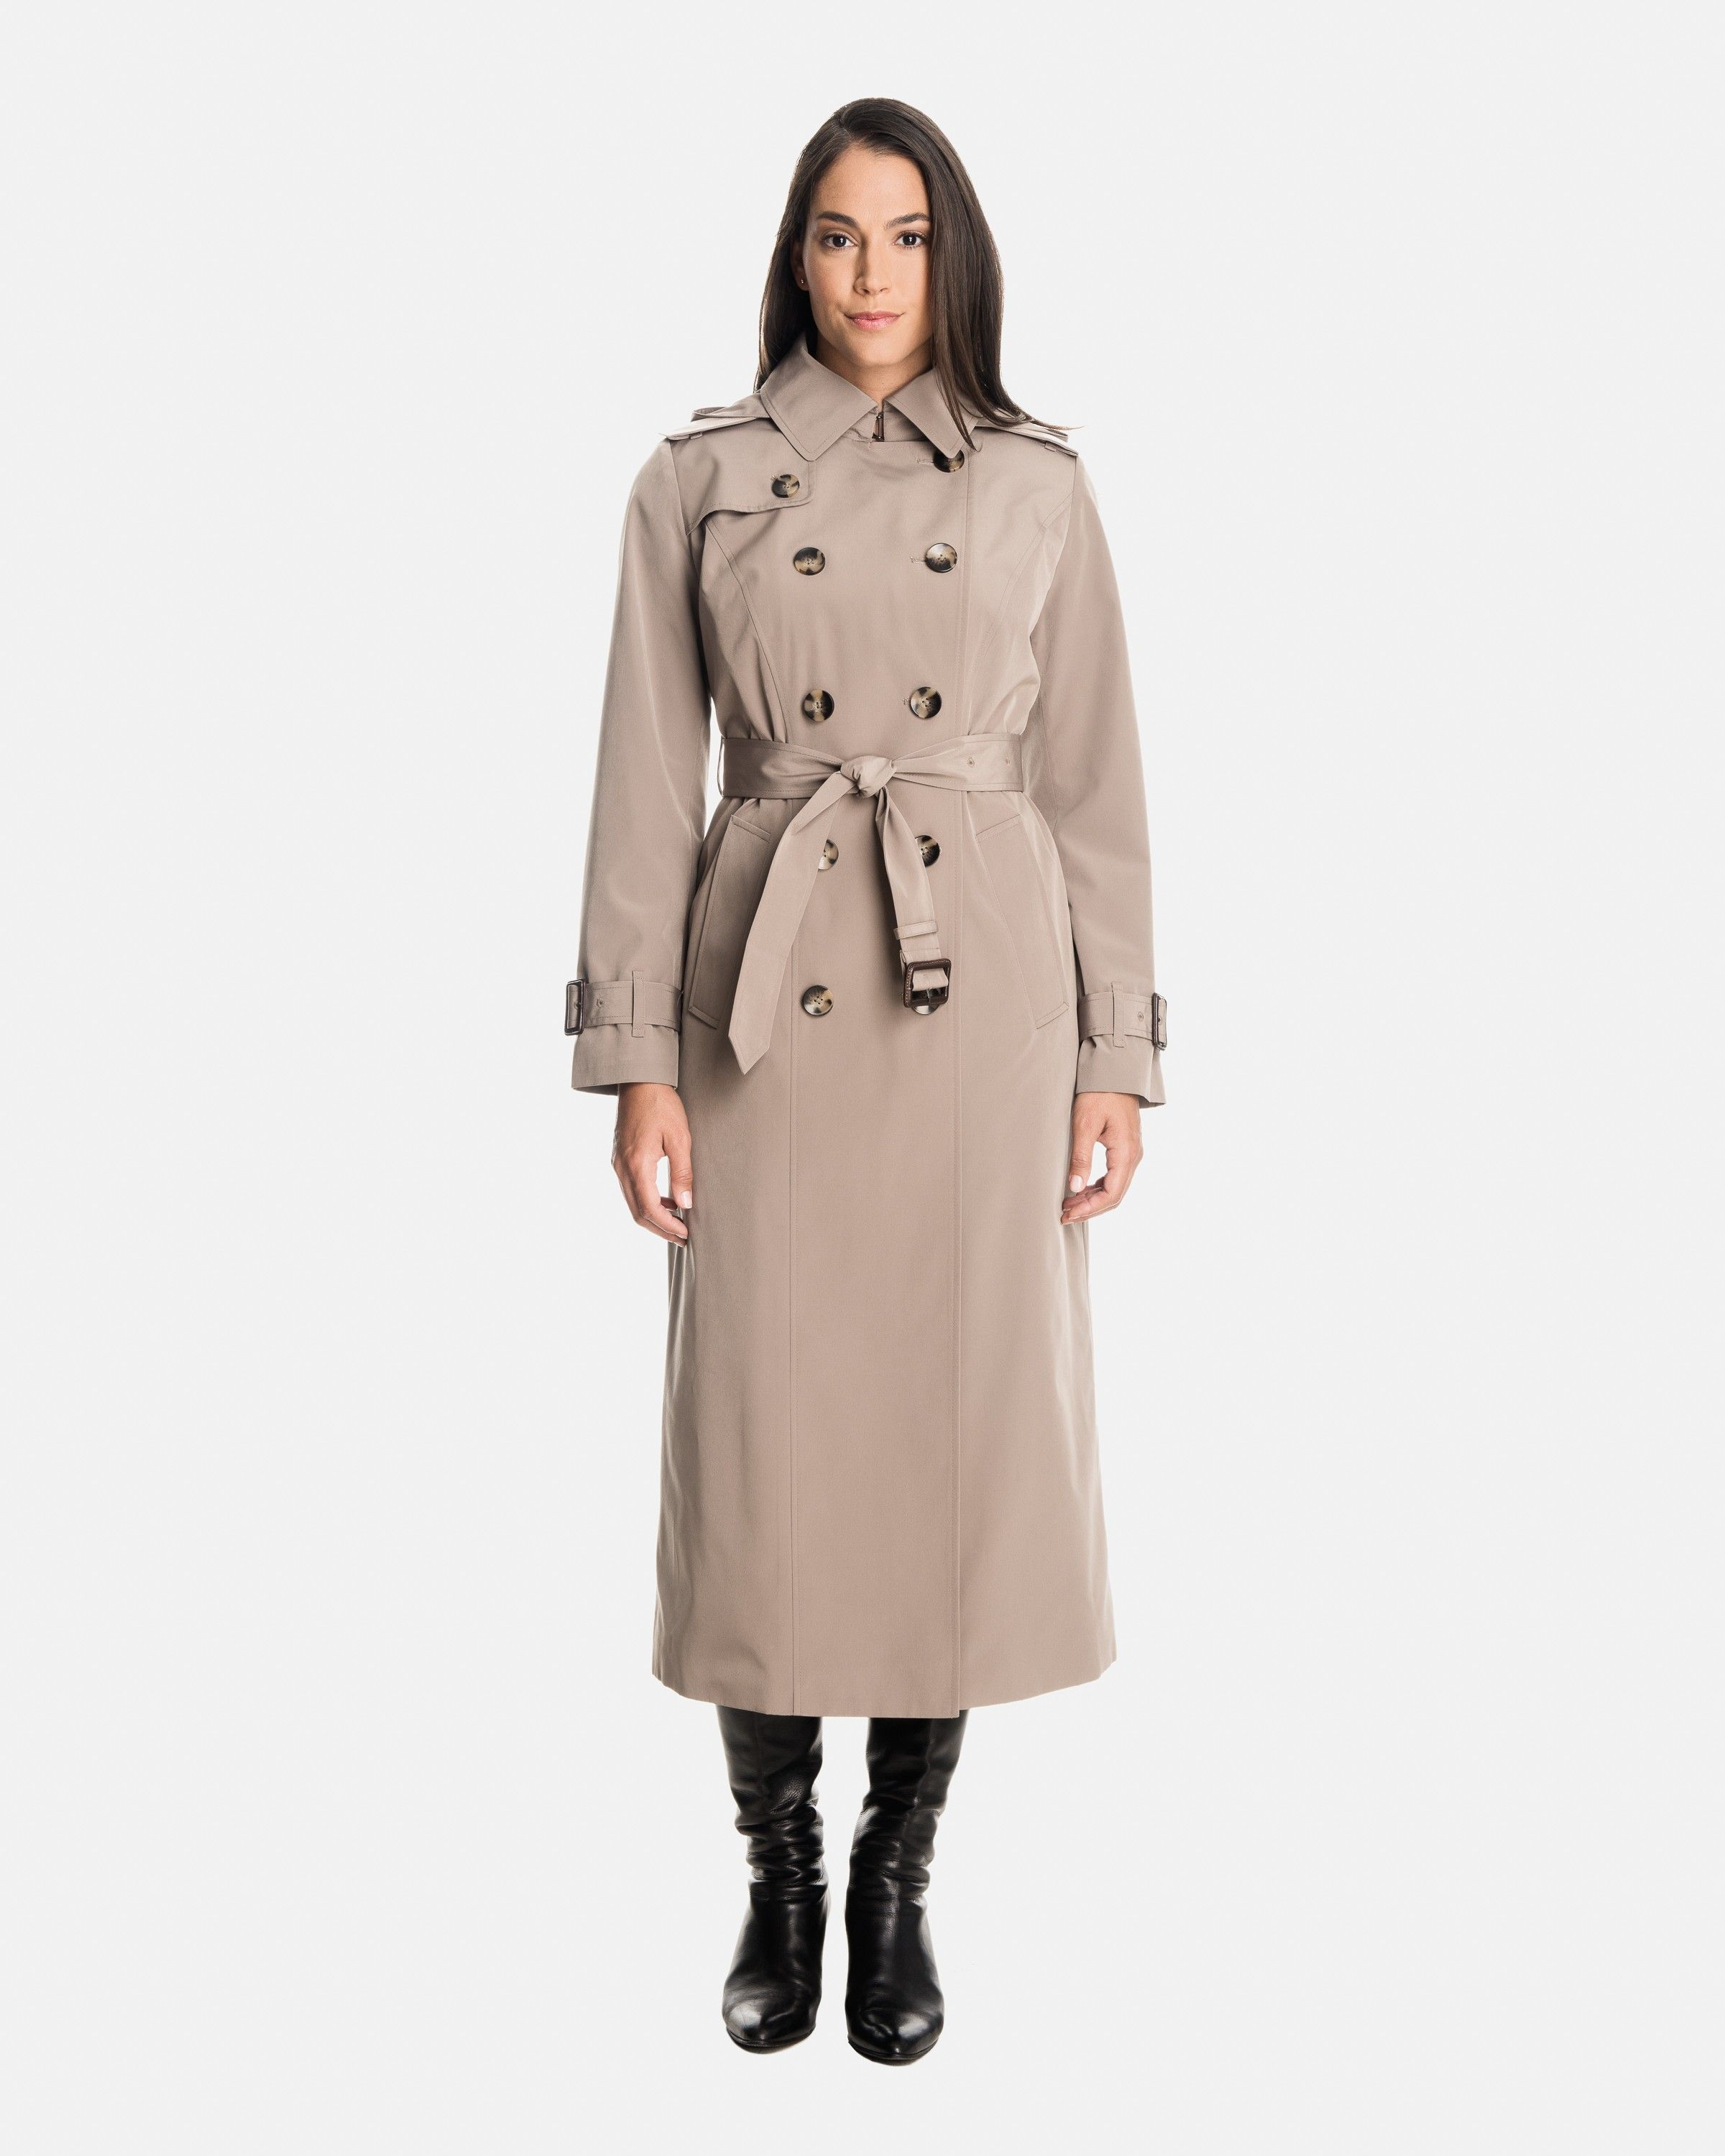 a22ee7c8584 Rachel Women s Long Trench Coat